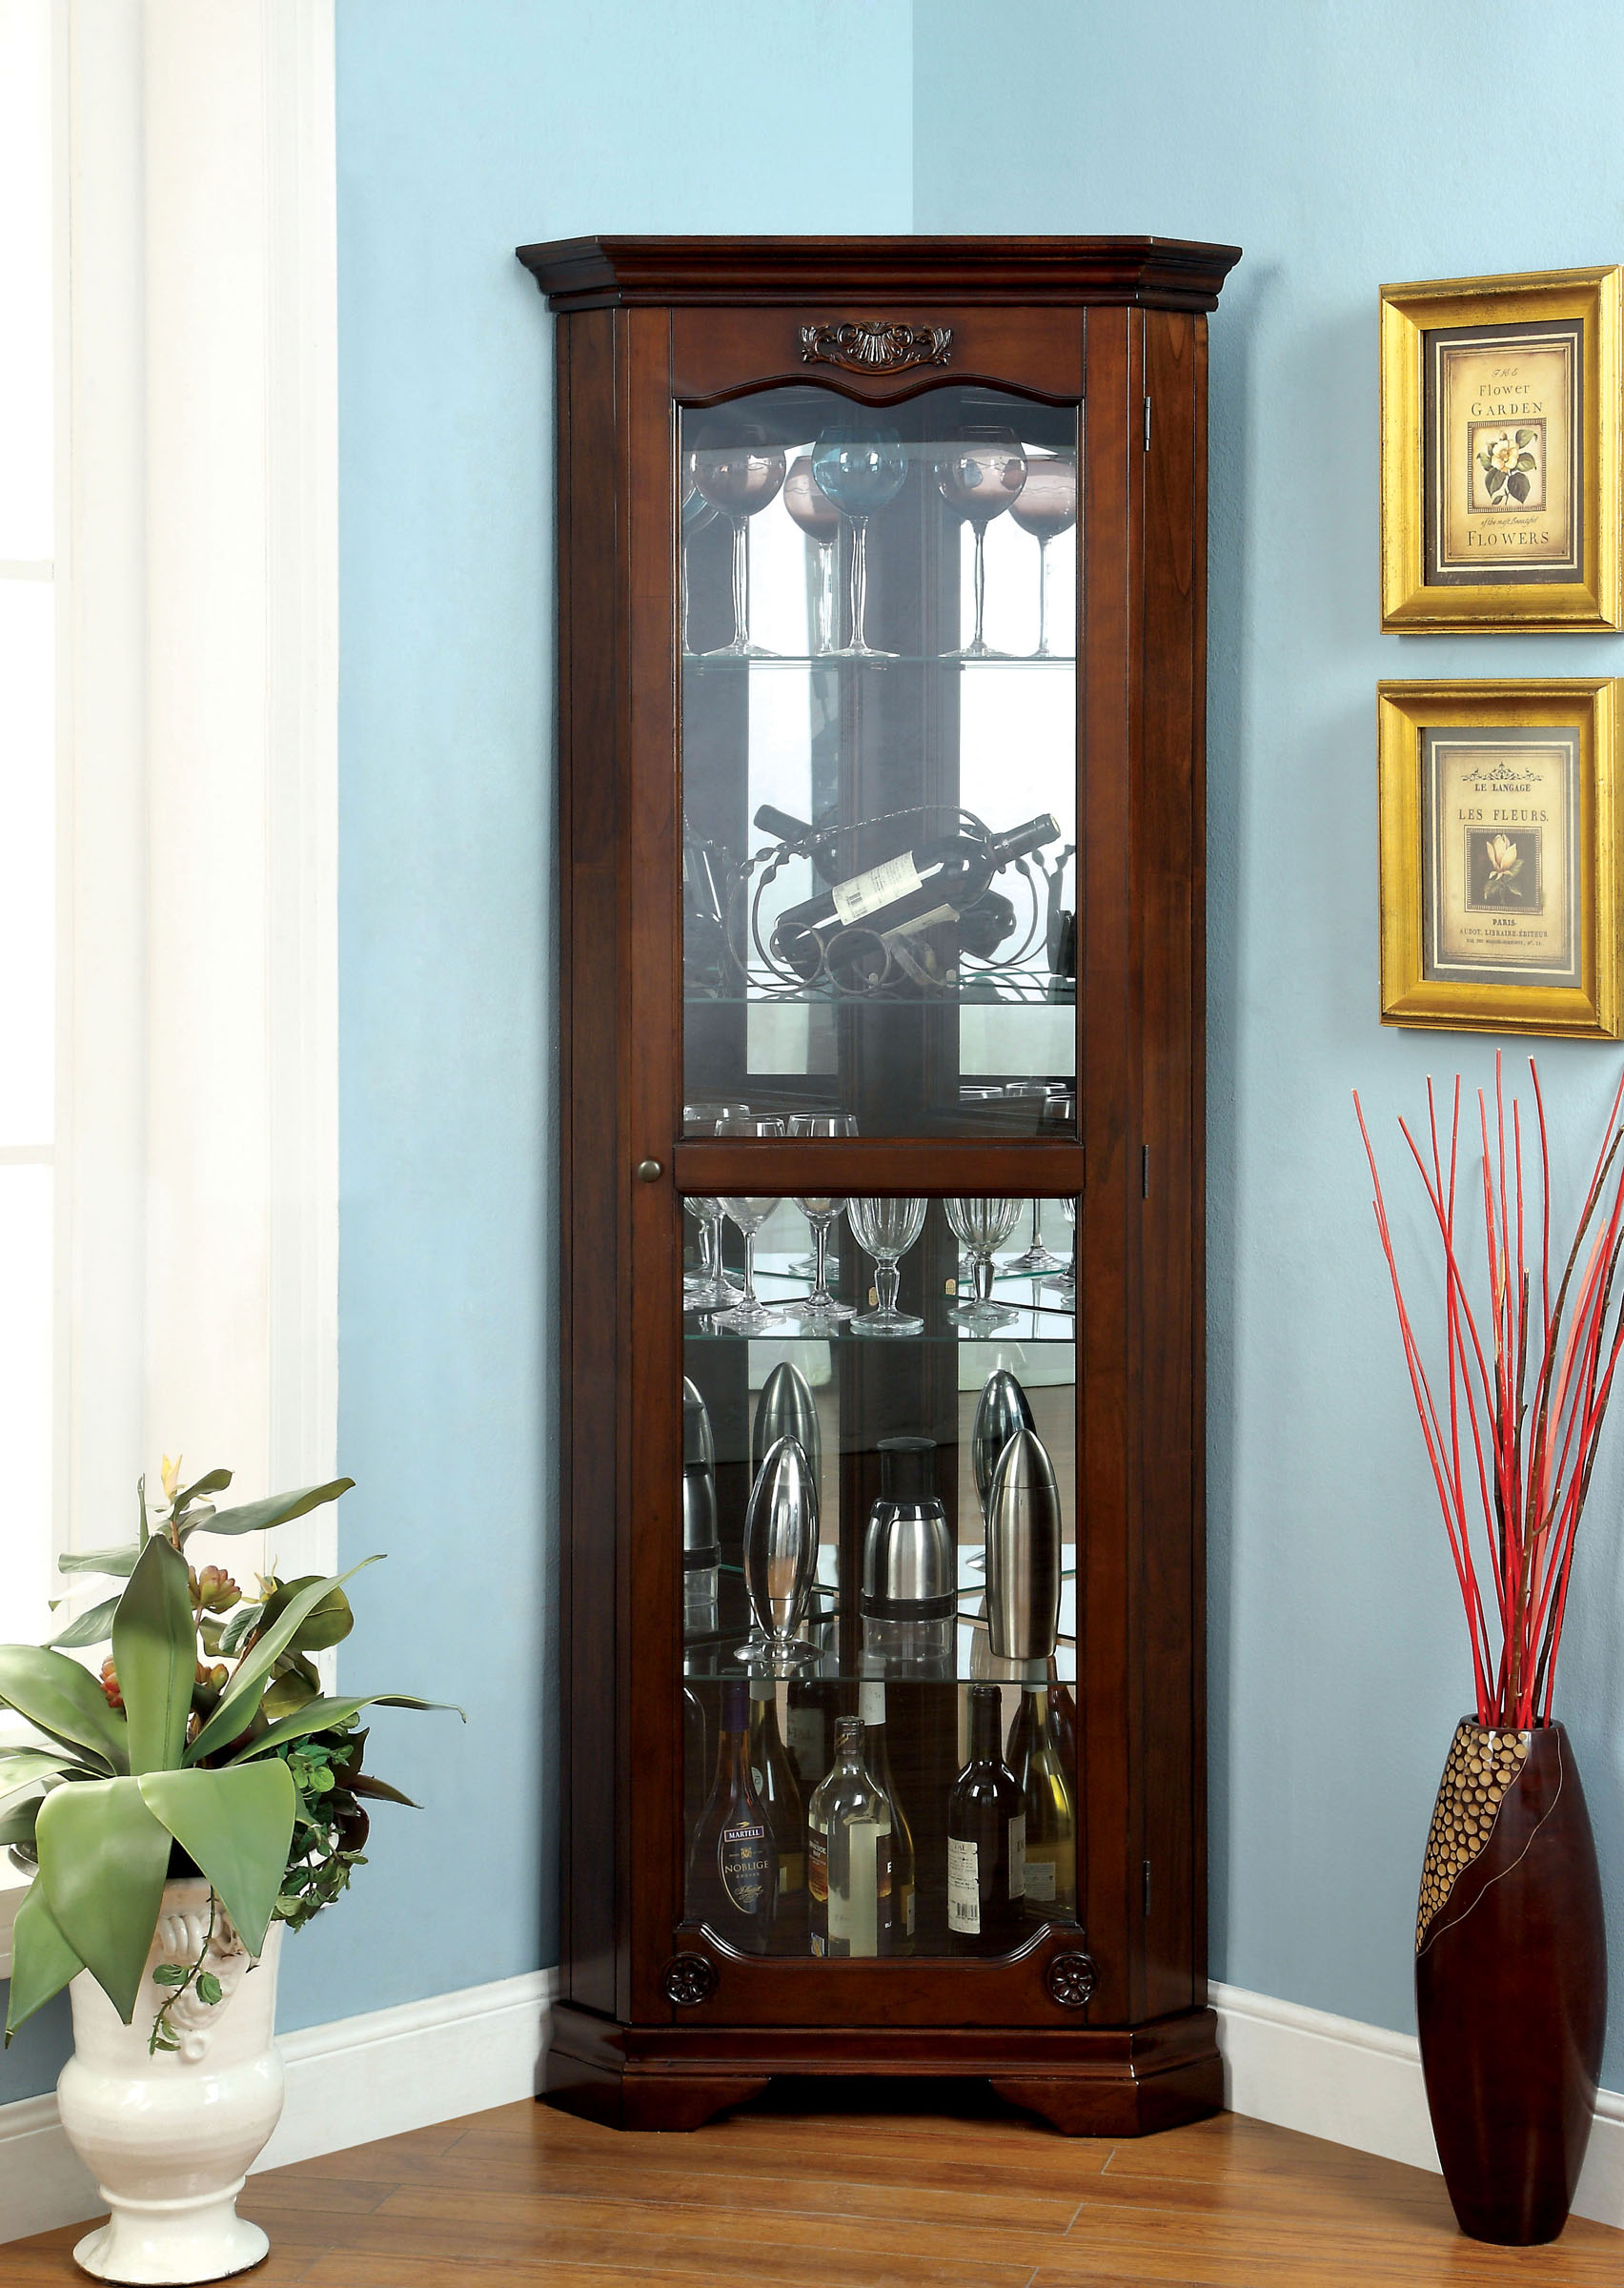 Furniture Of America Ortley Walnut Finish Curio Cabinet With Glass Framed Doors by Furniture of America